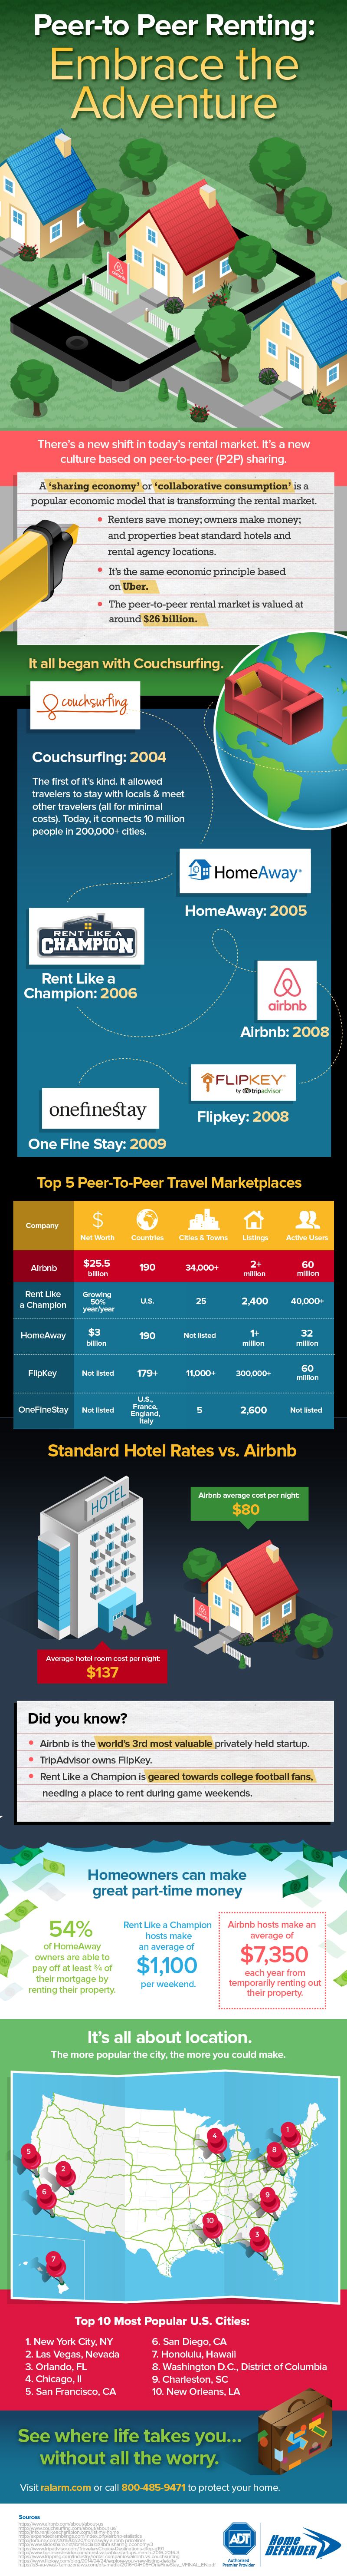 Travel House Rental infographic